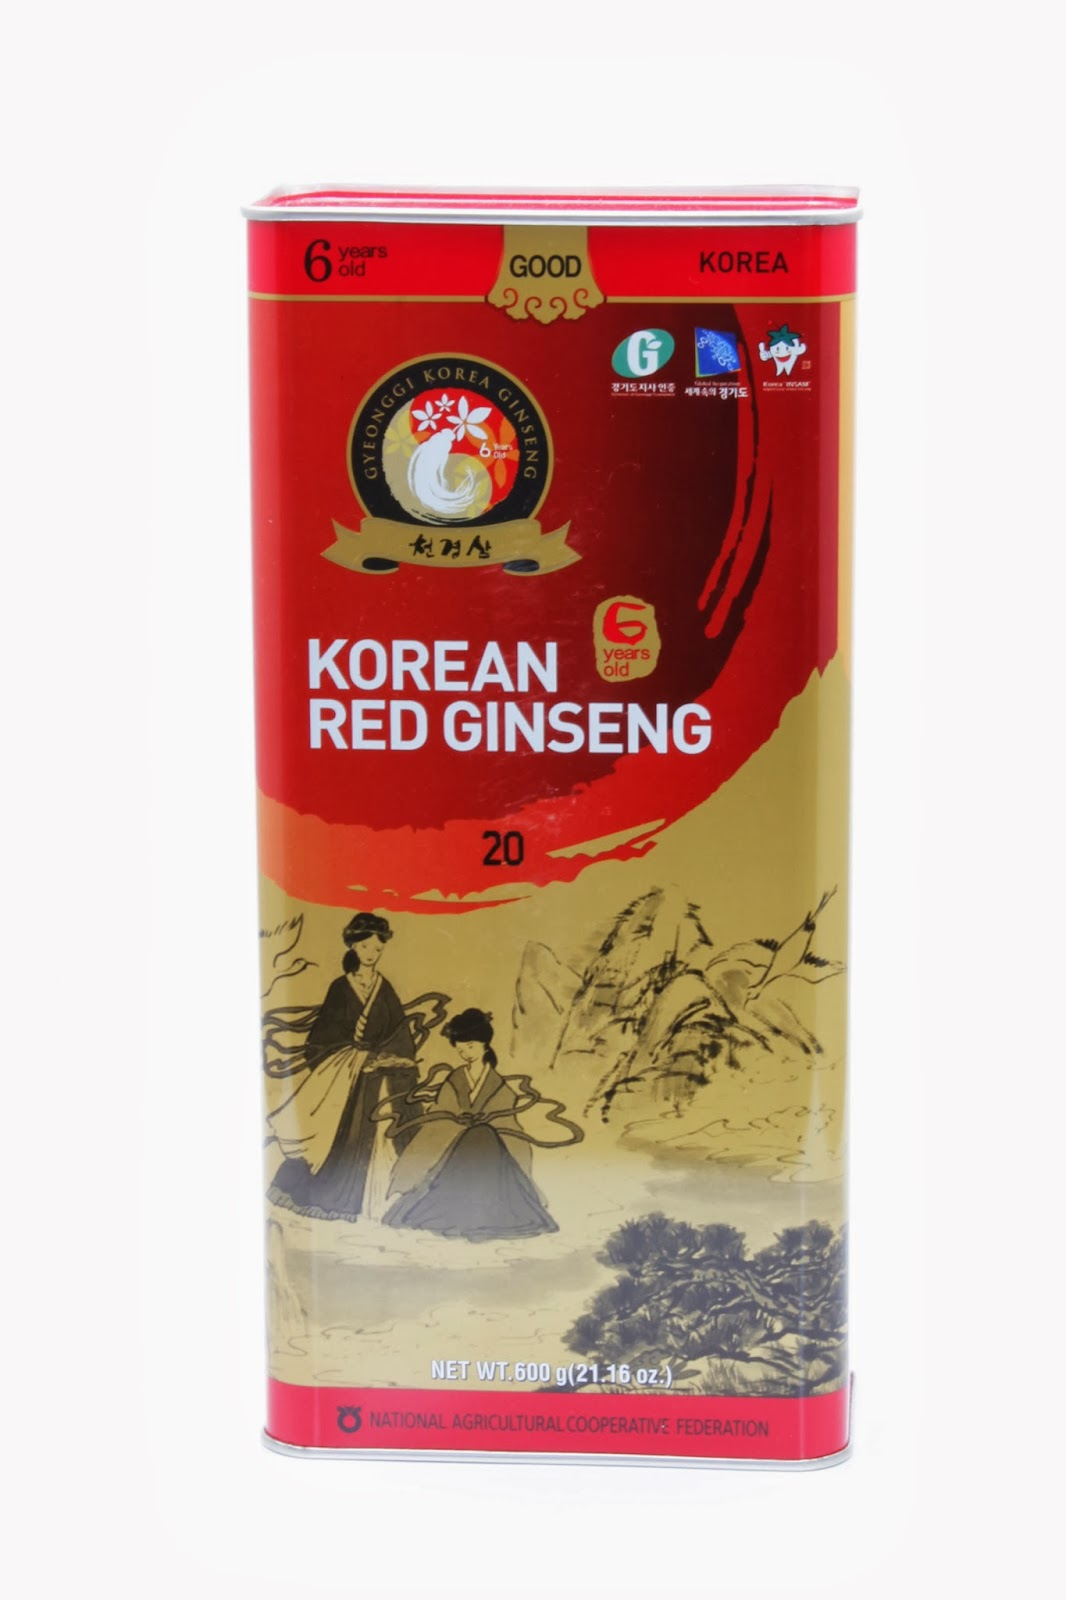 What is the Best Ginseng Tea? Is It The Korean or Panax Maybe?